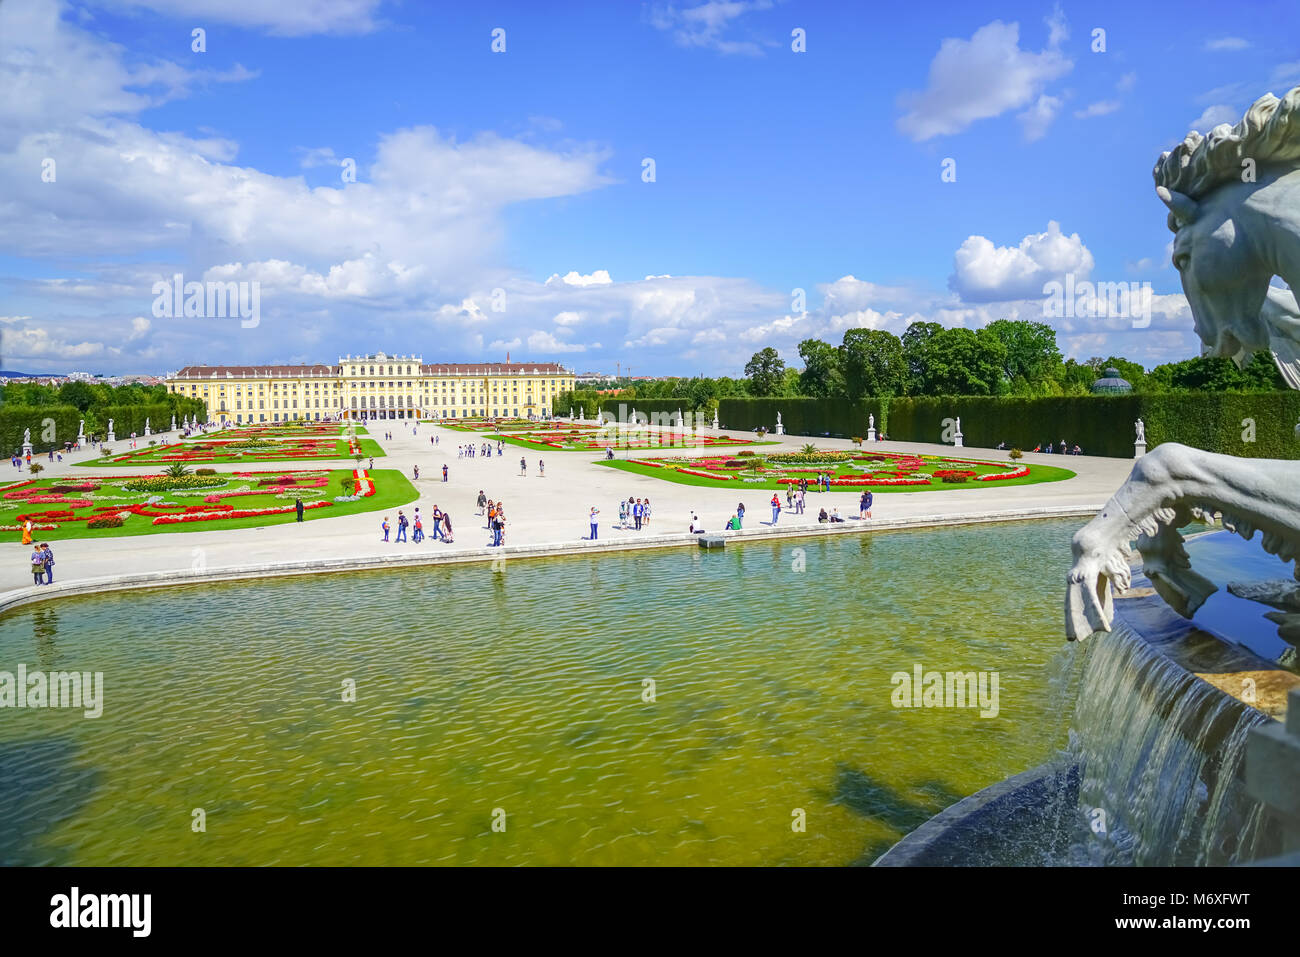 VIENNA,AUSTRIA - SEPTEMBER 4 2017; Tourists in grounds beyond large pond and horse statue of Baroque architectural - Stock Image